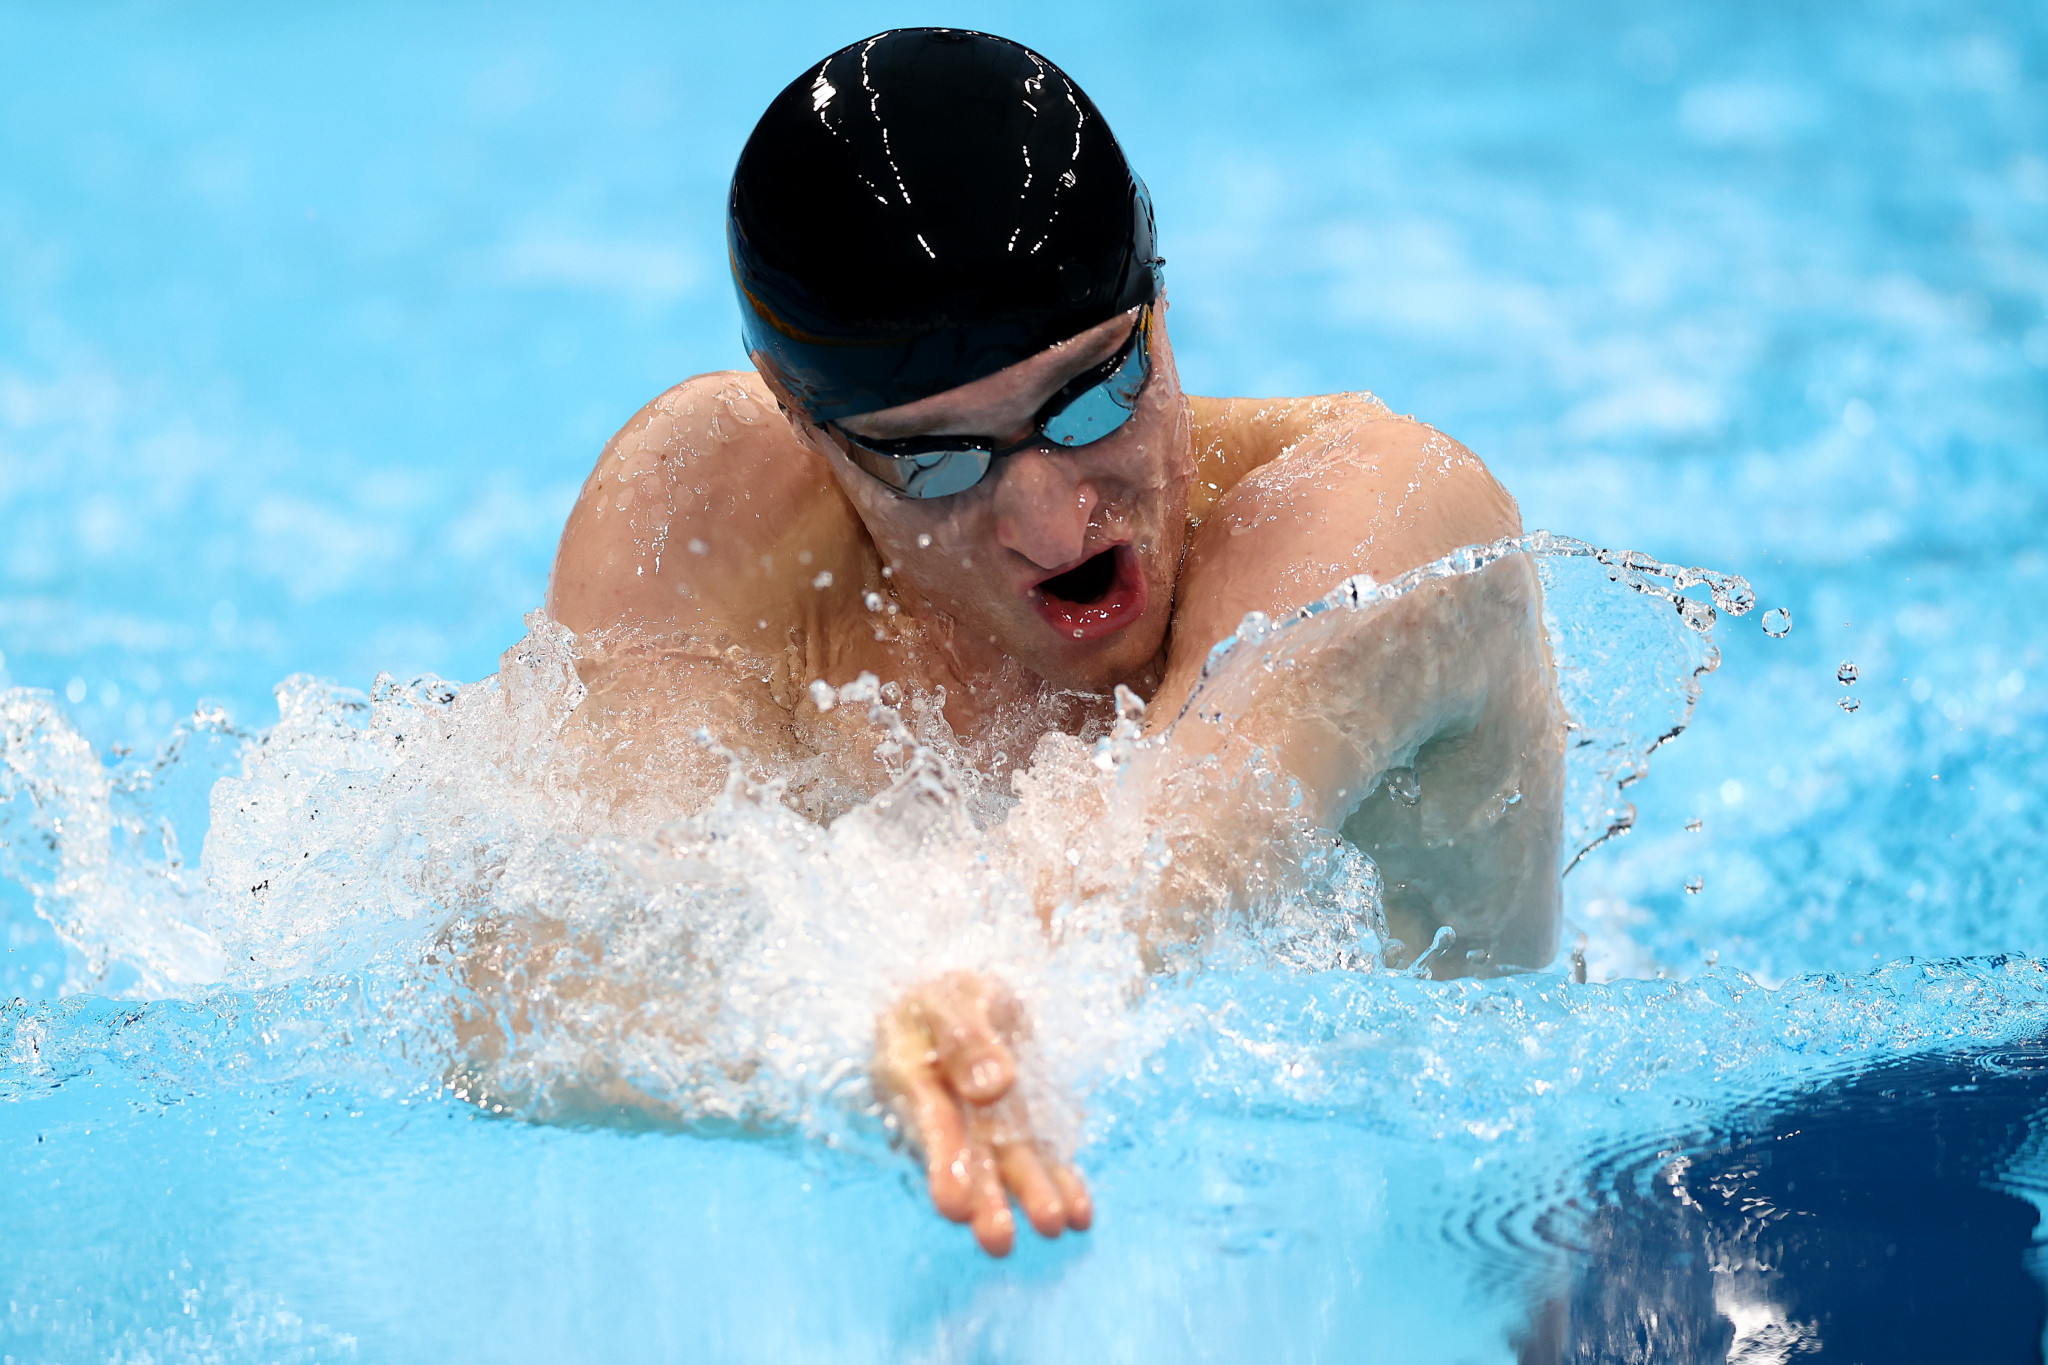 Andrei Kalina beat closest challenger Oscar Salguero Galisteo by 2.67 seconds in the final of the men's SB8 100m breaststroke at the Tokyo Aquatics Centre ©Getty Images